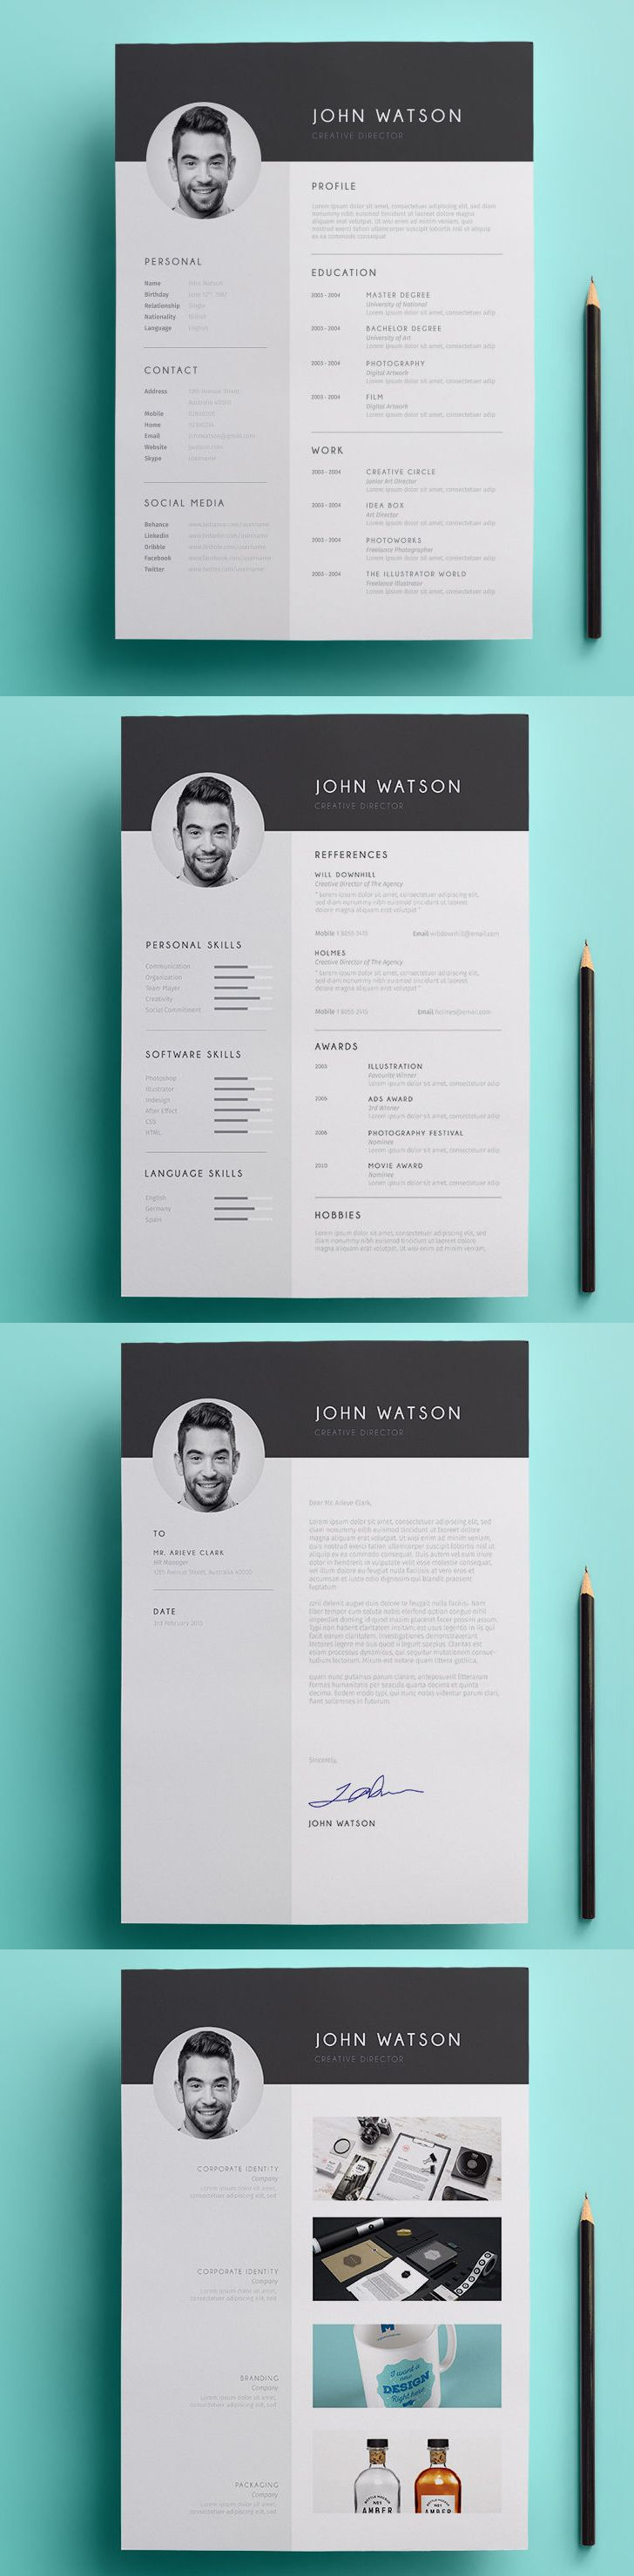 Minimalist Resume Template AI, PSD, DOCX | Resume tips | Pinterest ...